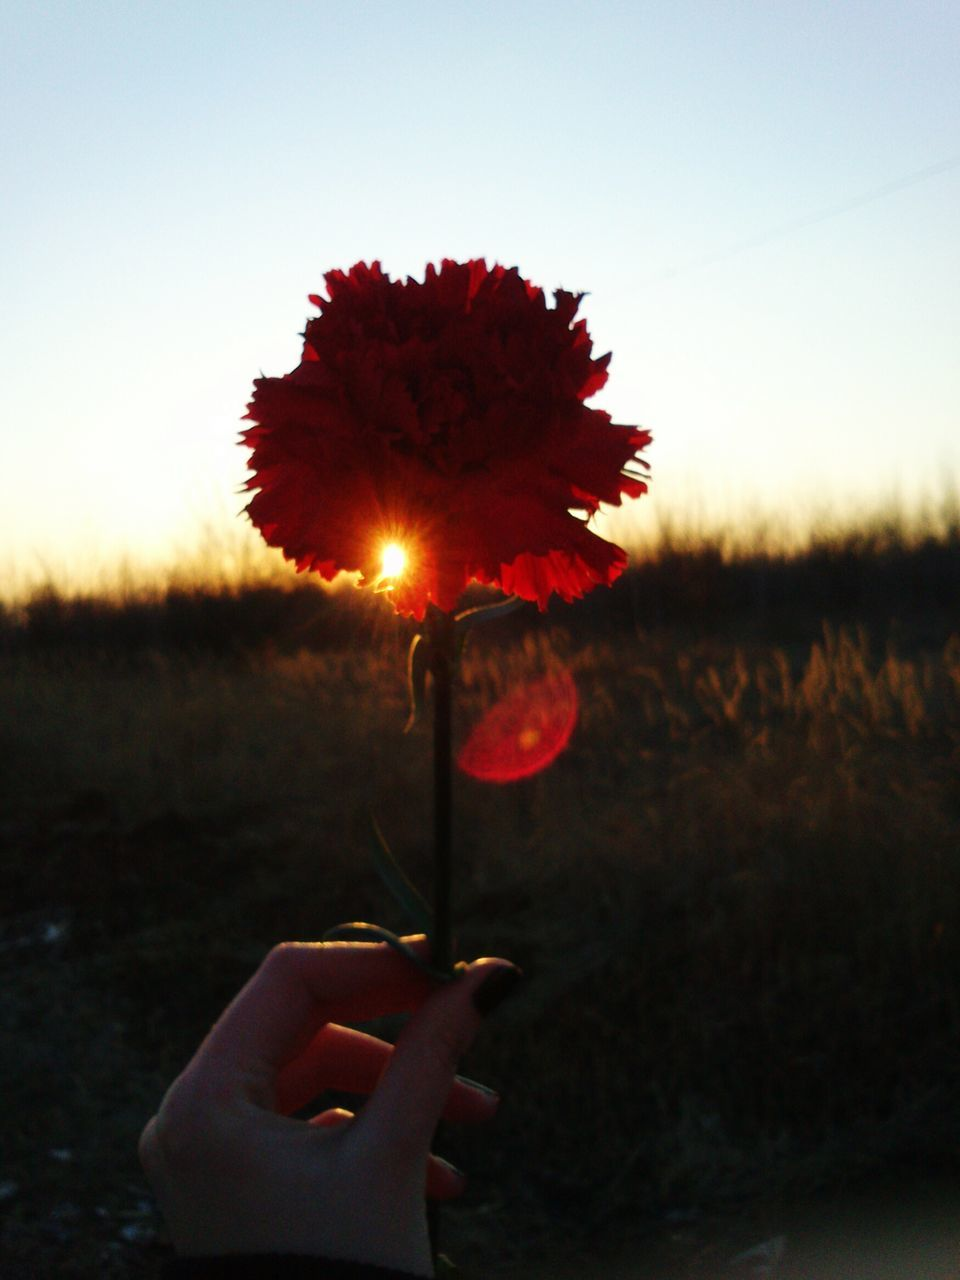 flower, person, red, holding, sunset, part of, sky, sun, field, nature, beauty in nature, sunlight, orange color, clear sky, fragility, plant, close-up